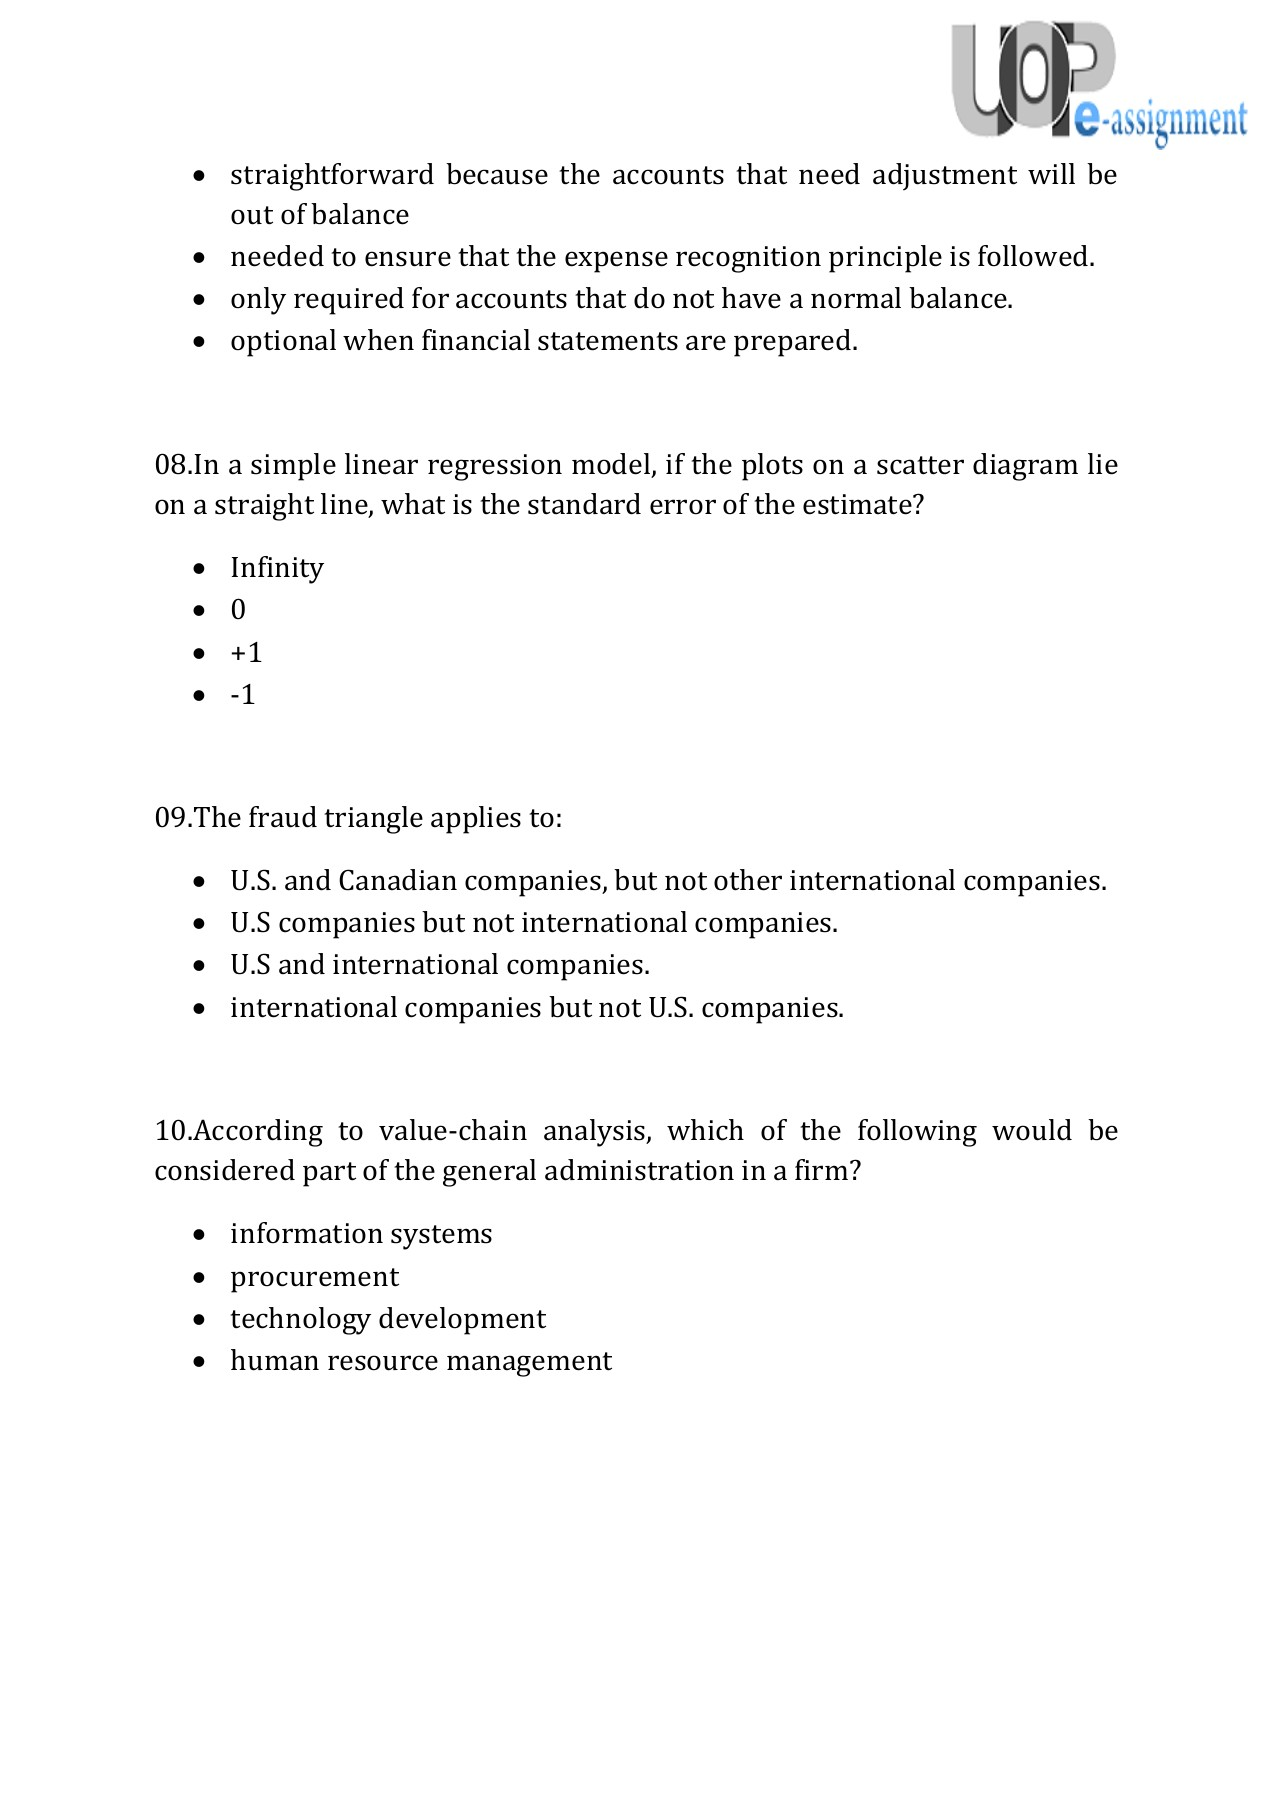 475/BUS Capstone Part 2 Final Exam - Questions & Answers